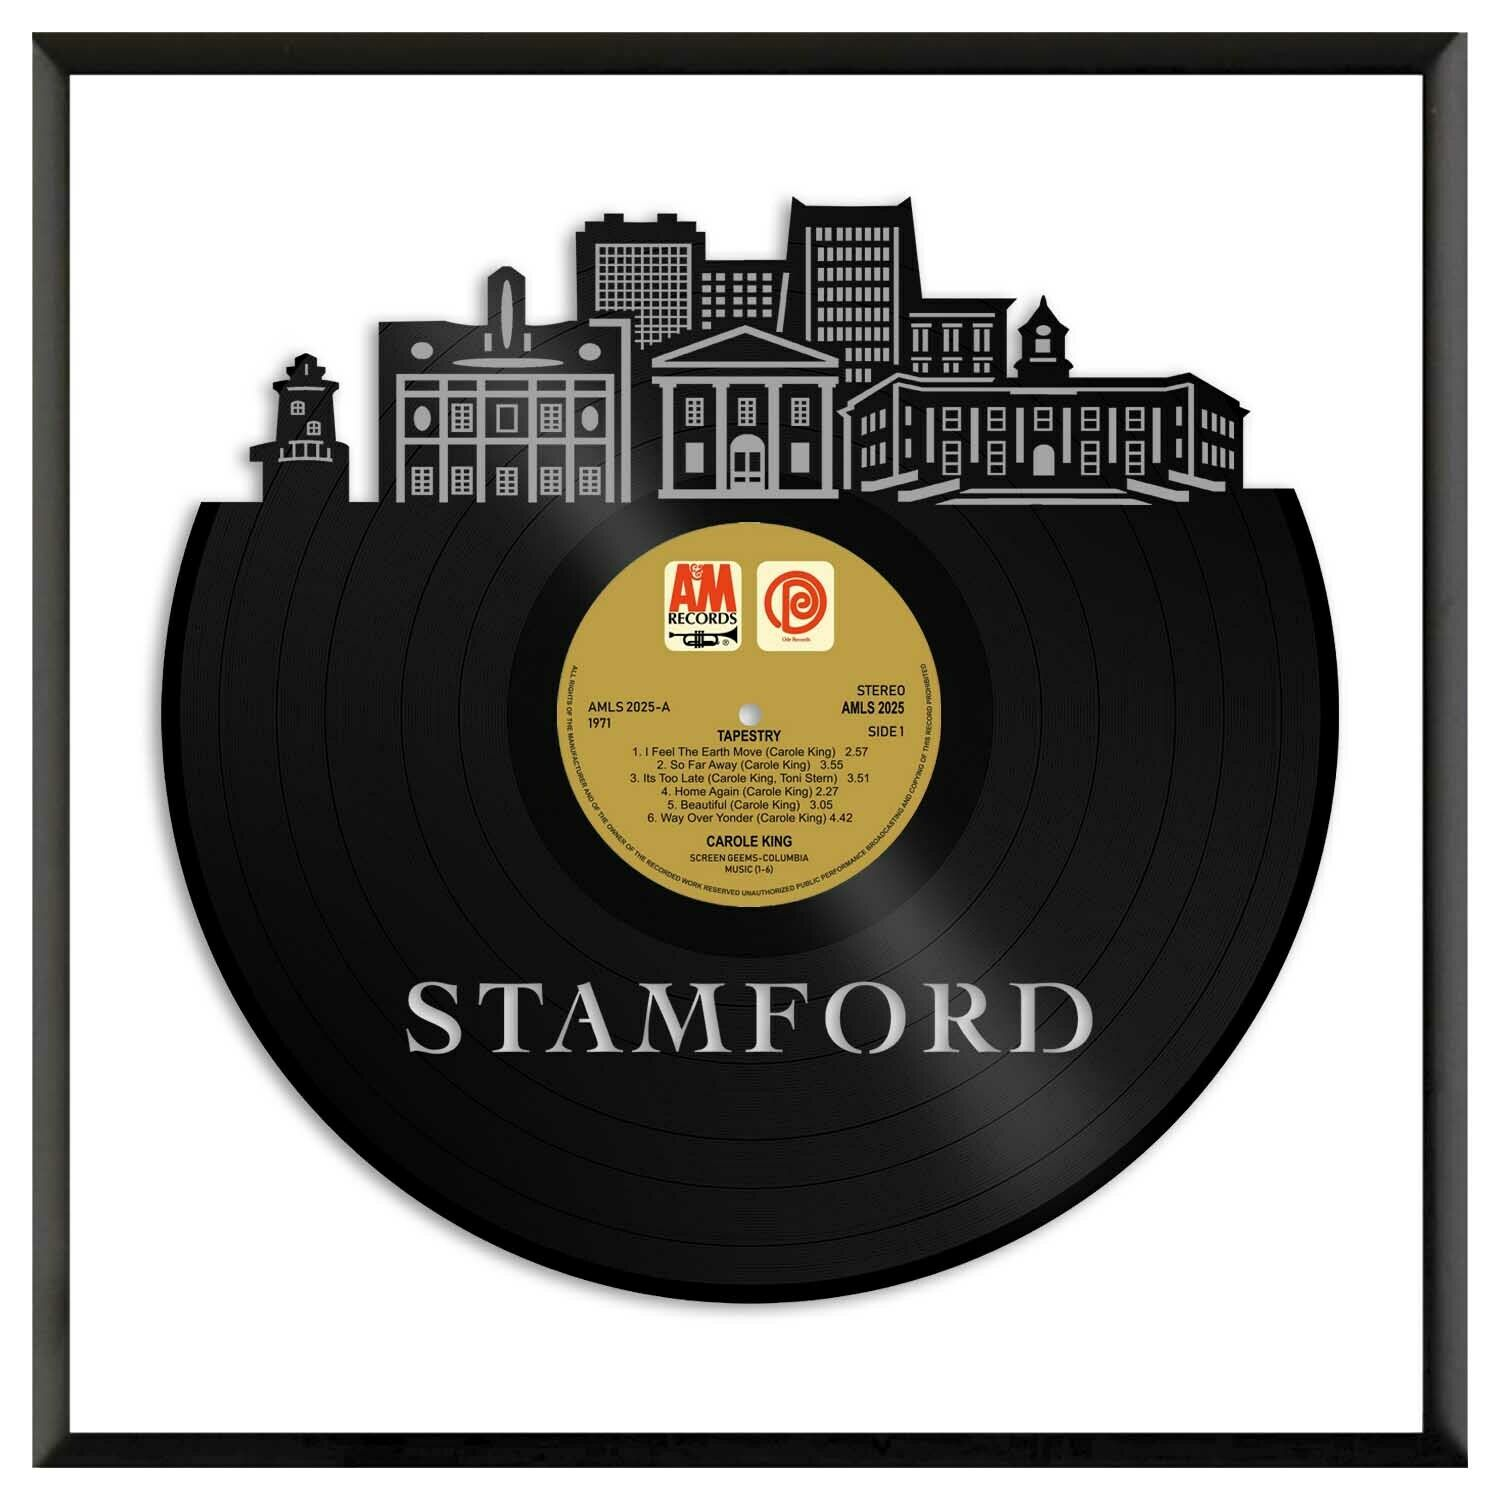 Stamford CT Vinyl Wall Art Cityscape Exclusive Gift Home Room Decoration Framed